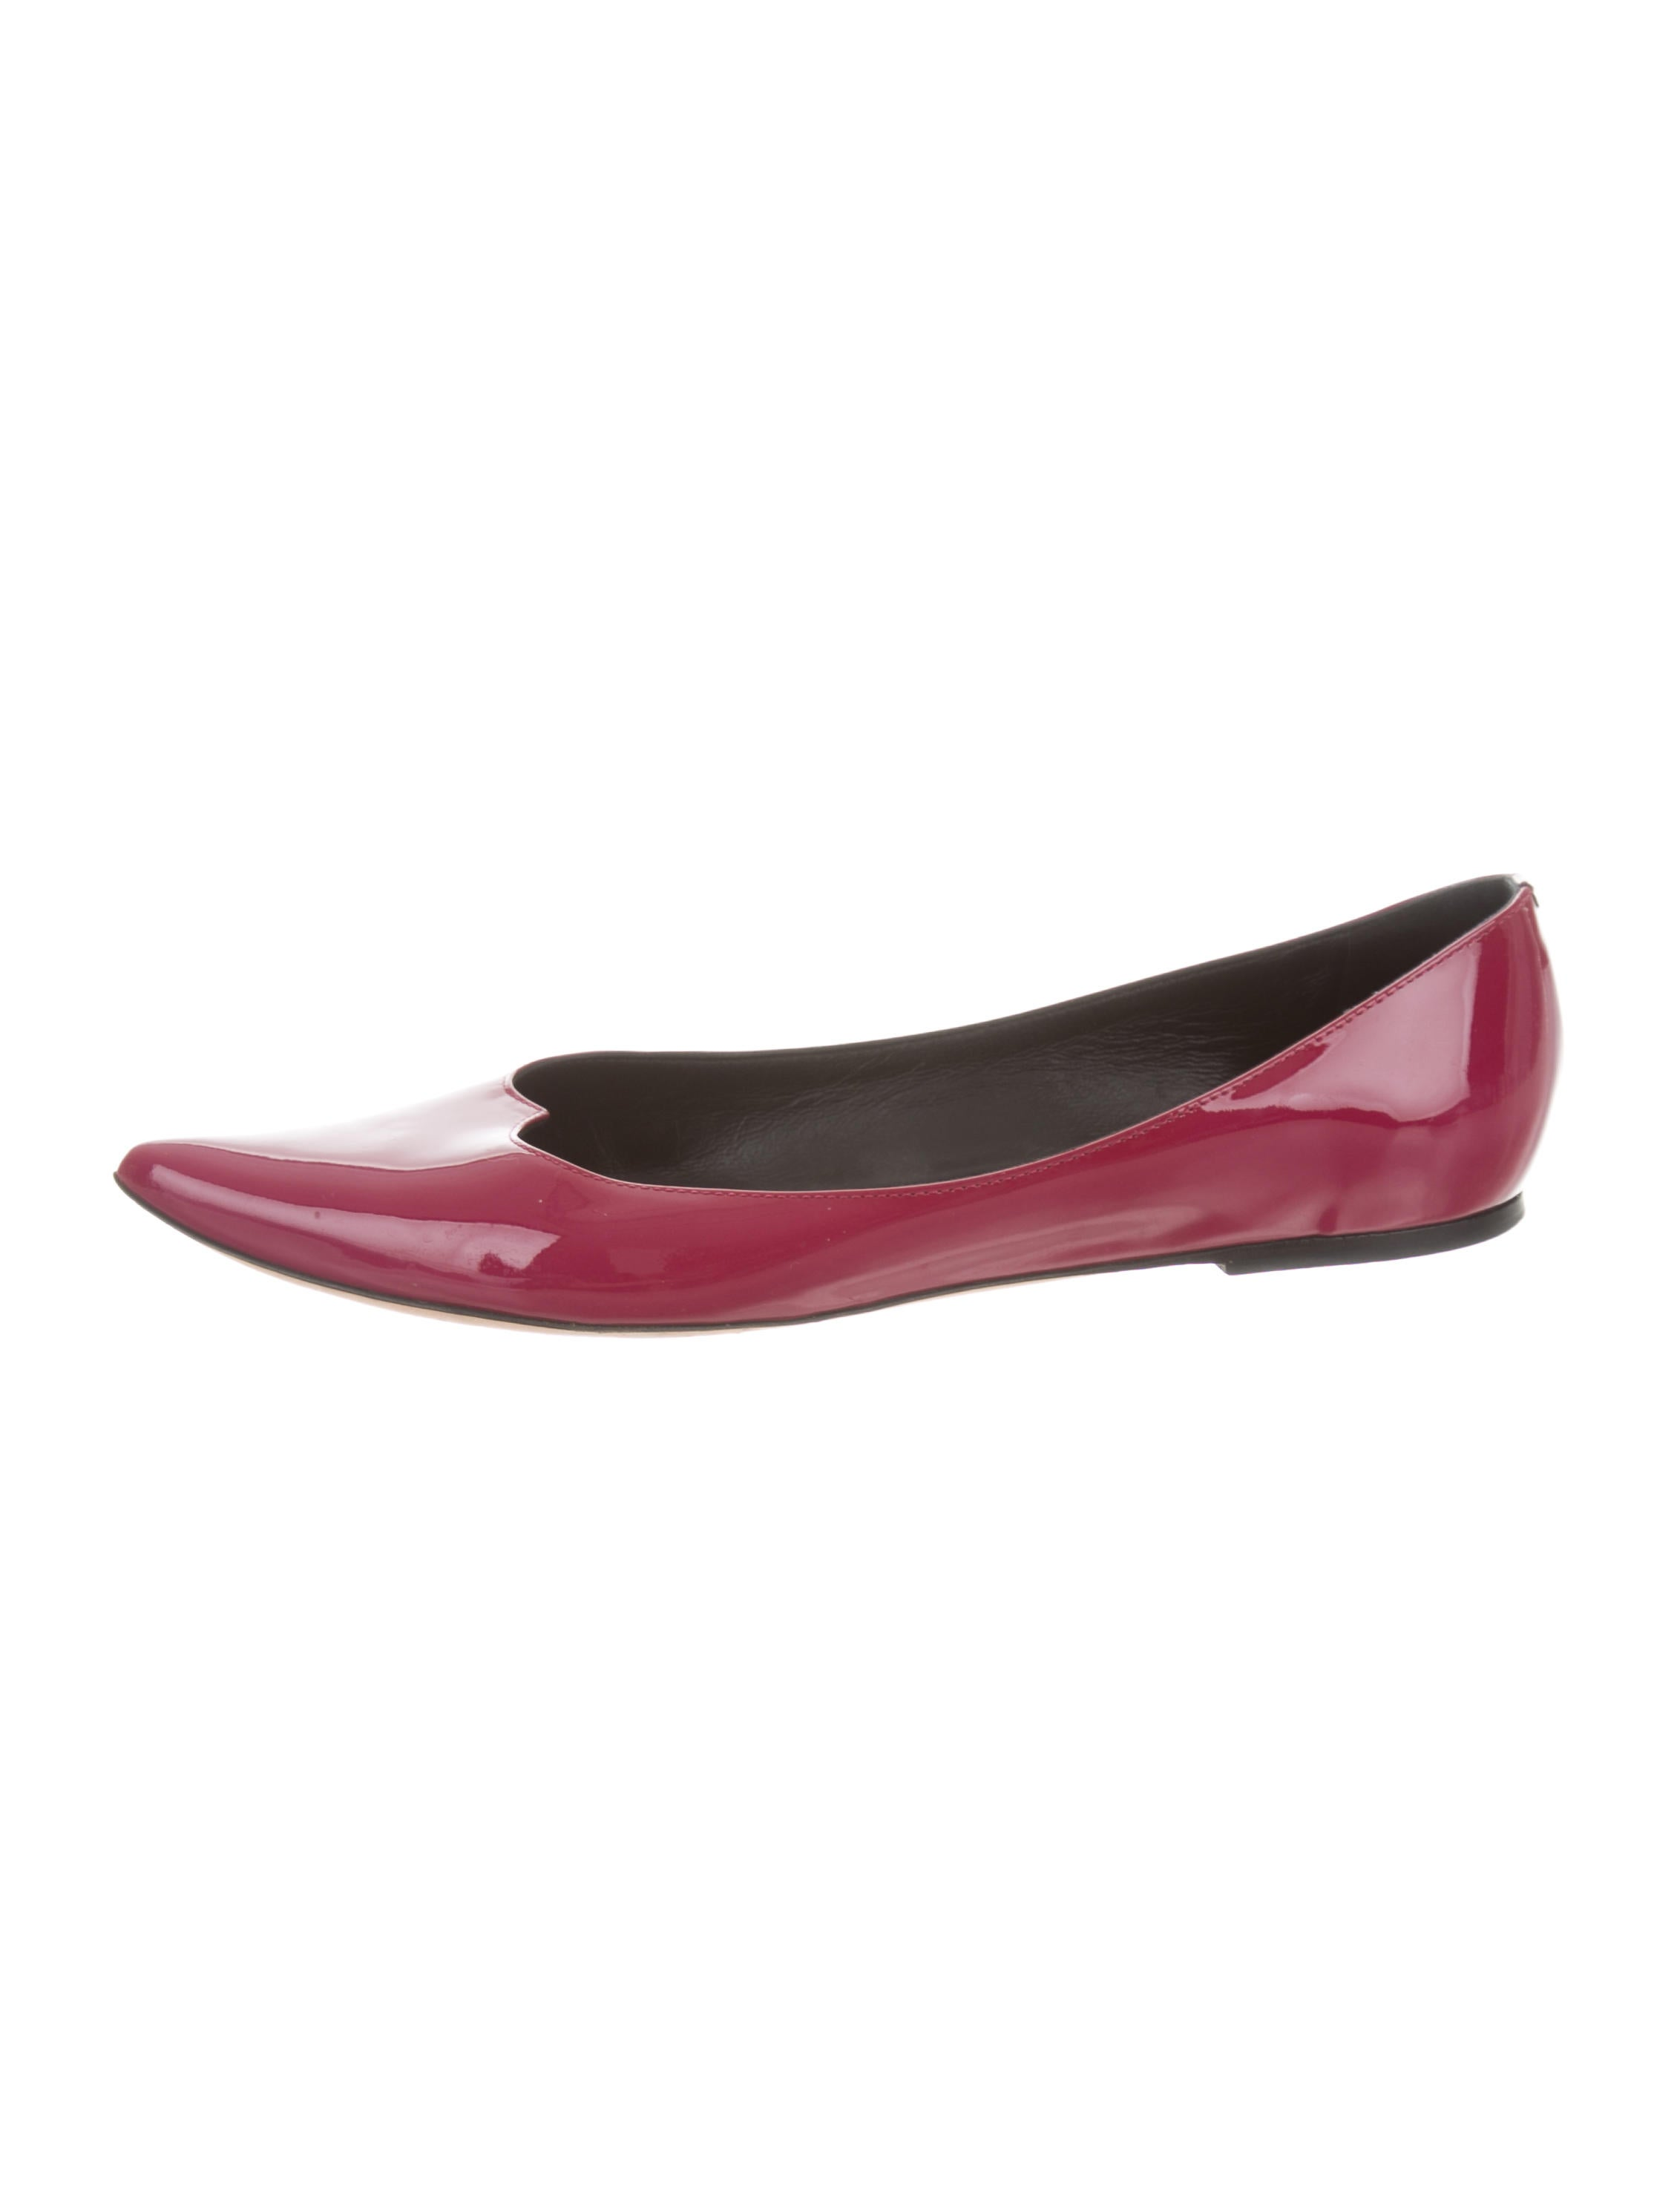 clearance shop Tomas Maier Patent Leather Pointed-Toe Flats clearance fast delivery sale big sale sale finishline VHmmG